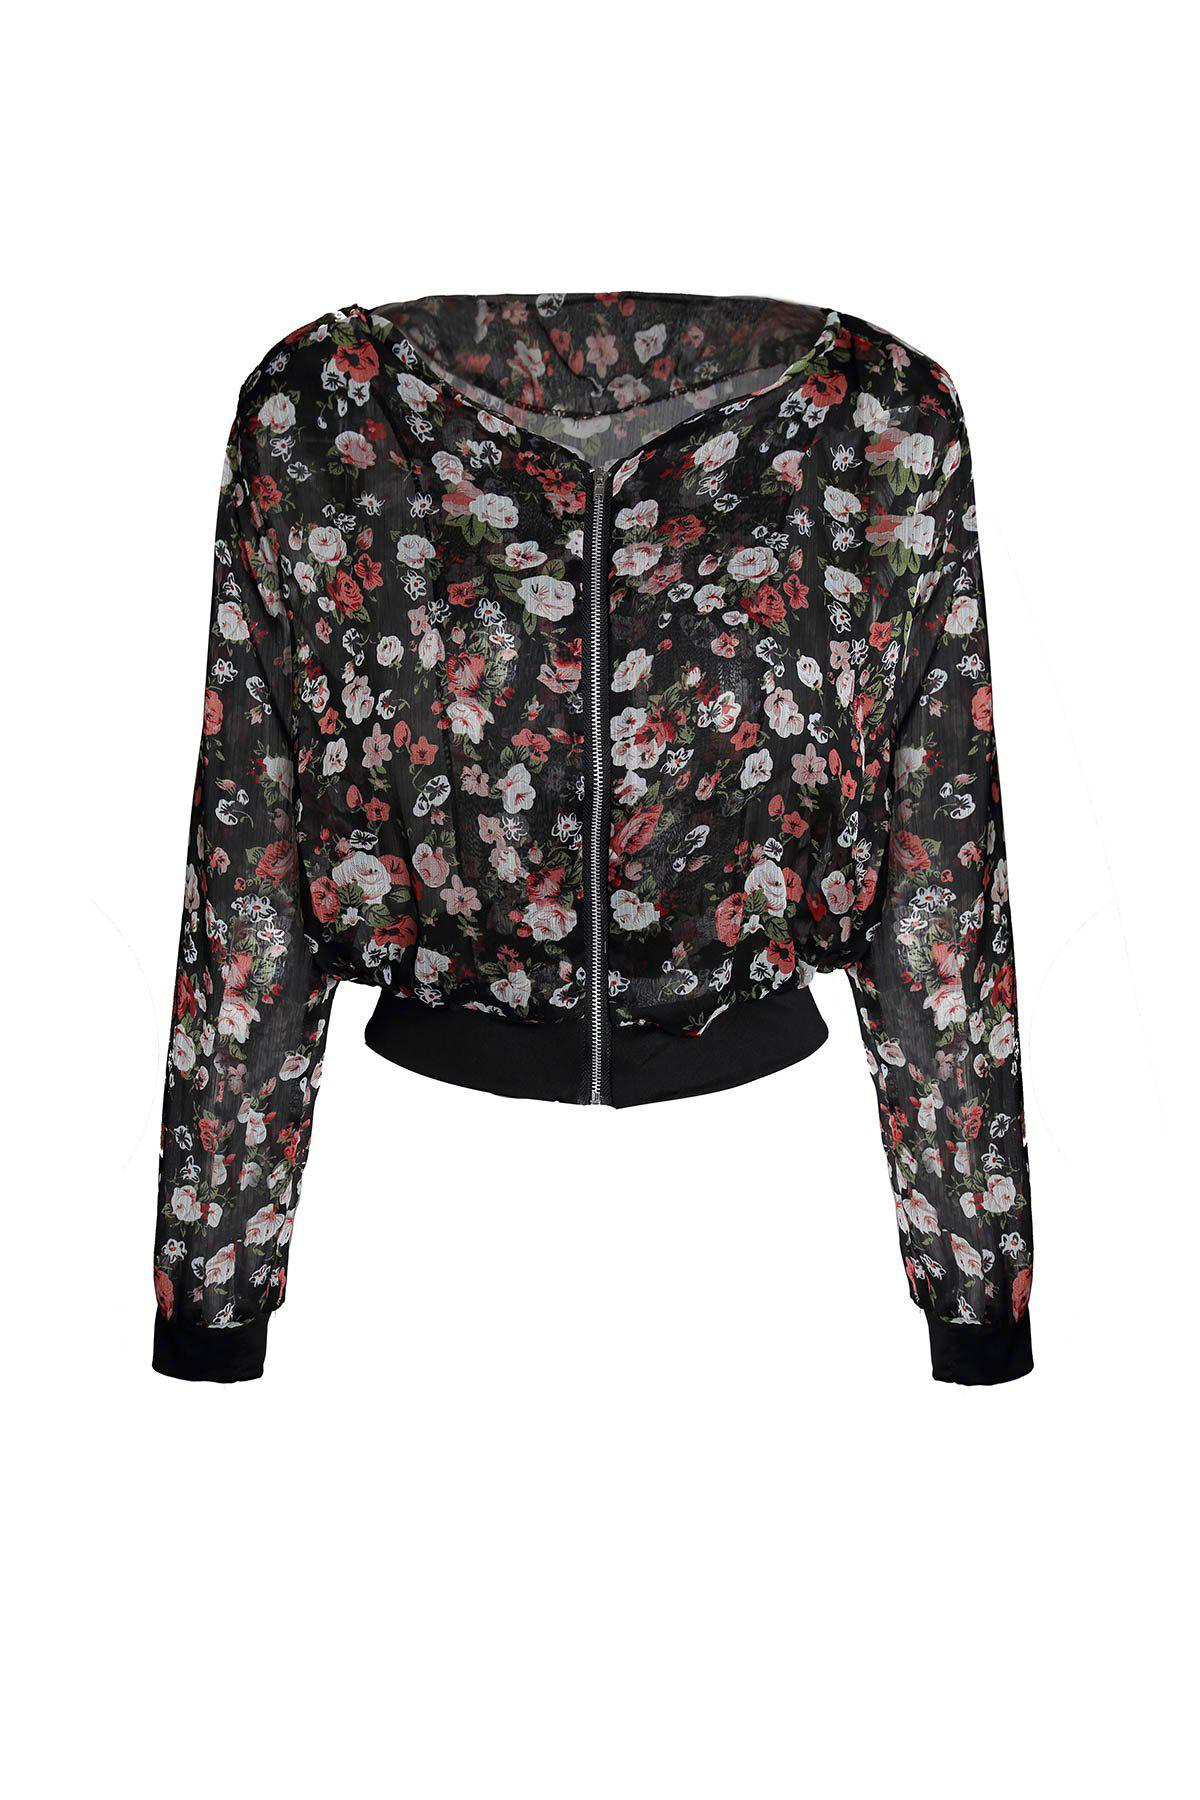 Online Stylish Scoop Neck Floral Print Zipper Shoulder Pad Chiffon Women's Coat